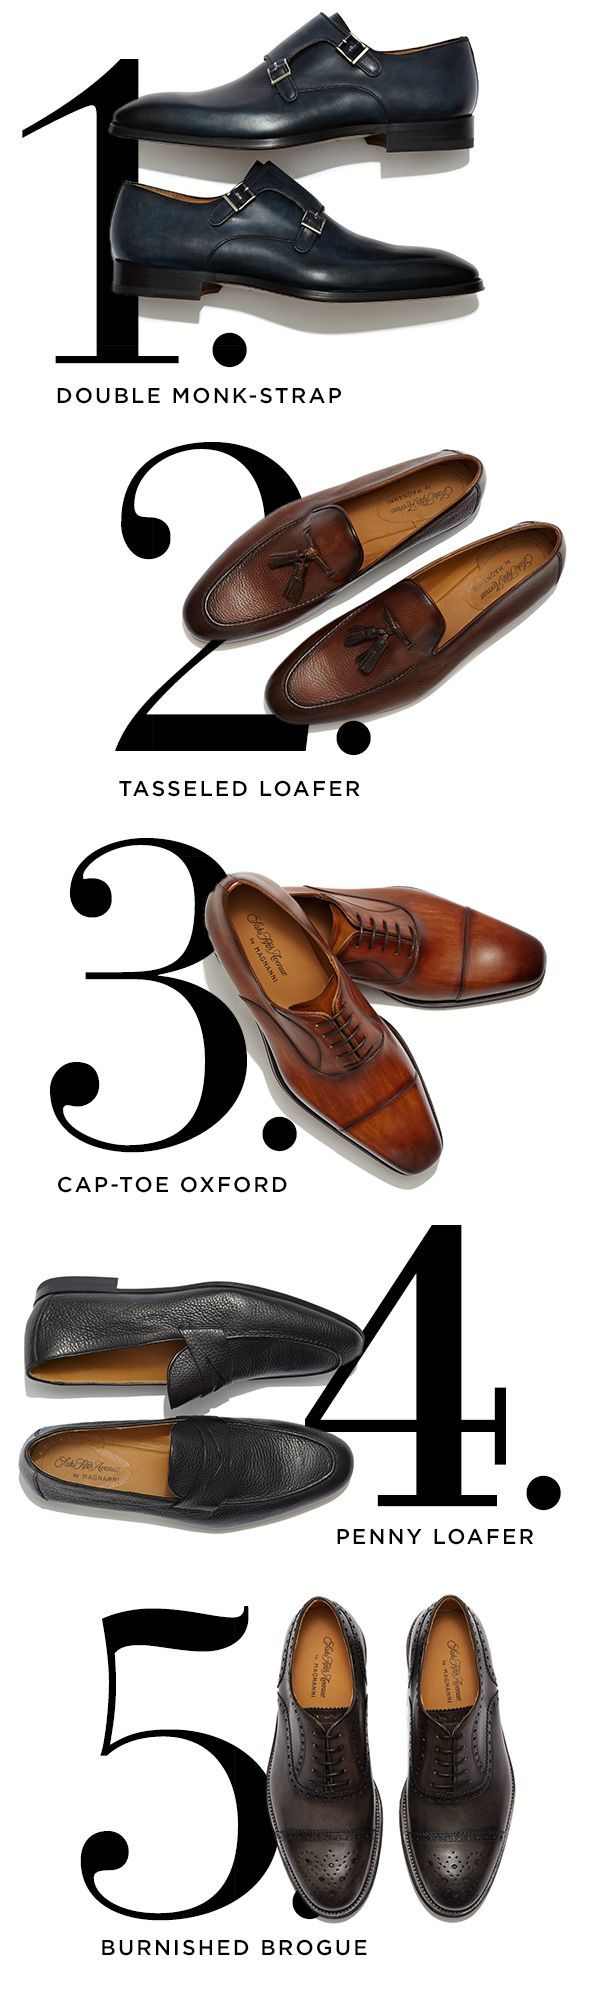 Polished shoes for the professional man. #SaksMen